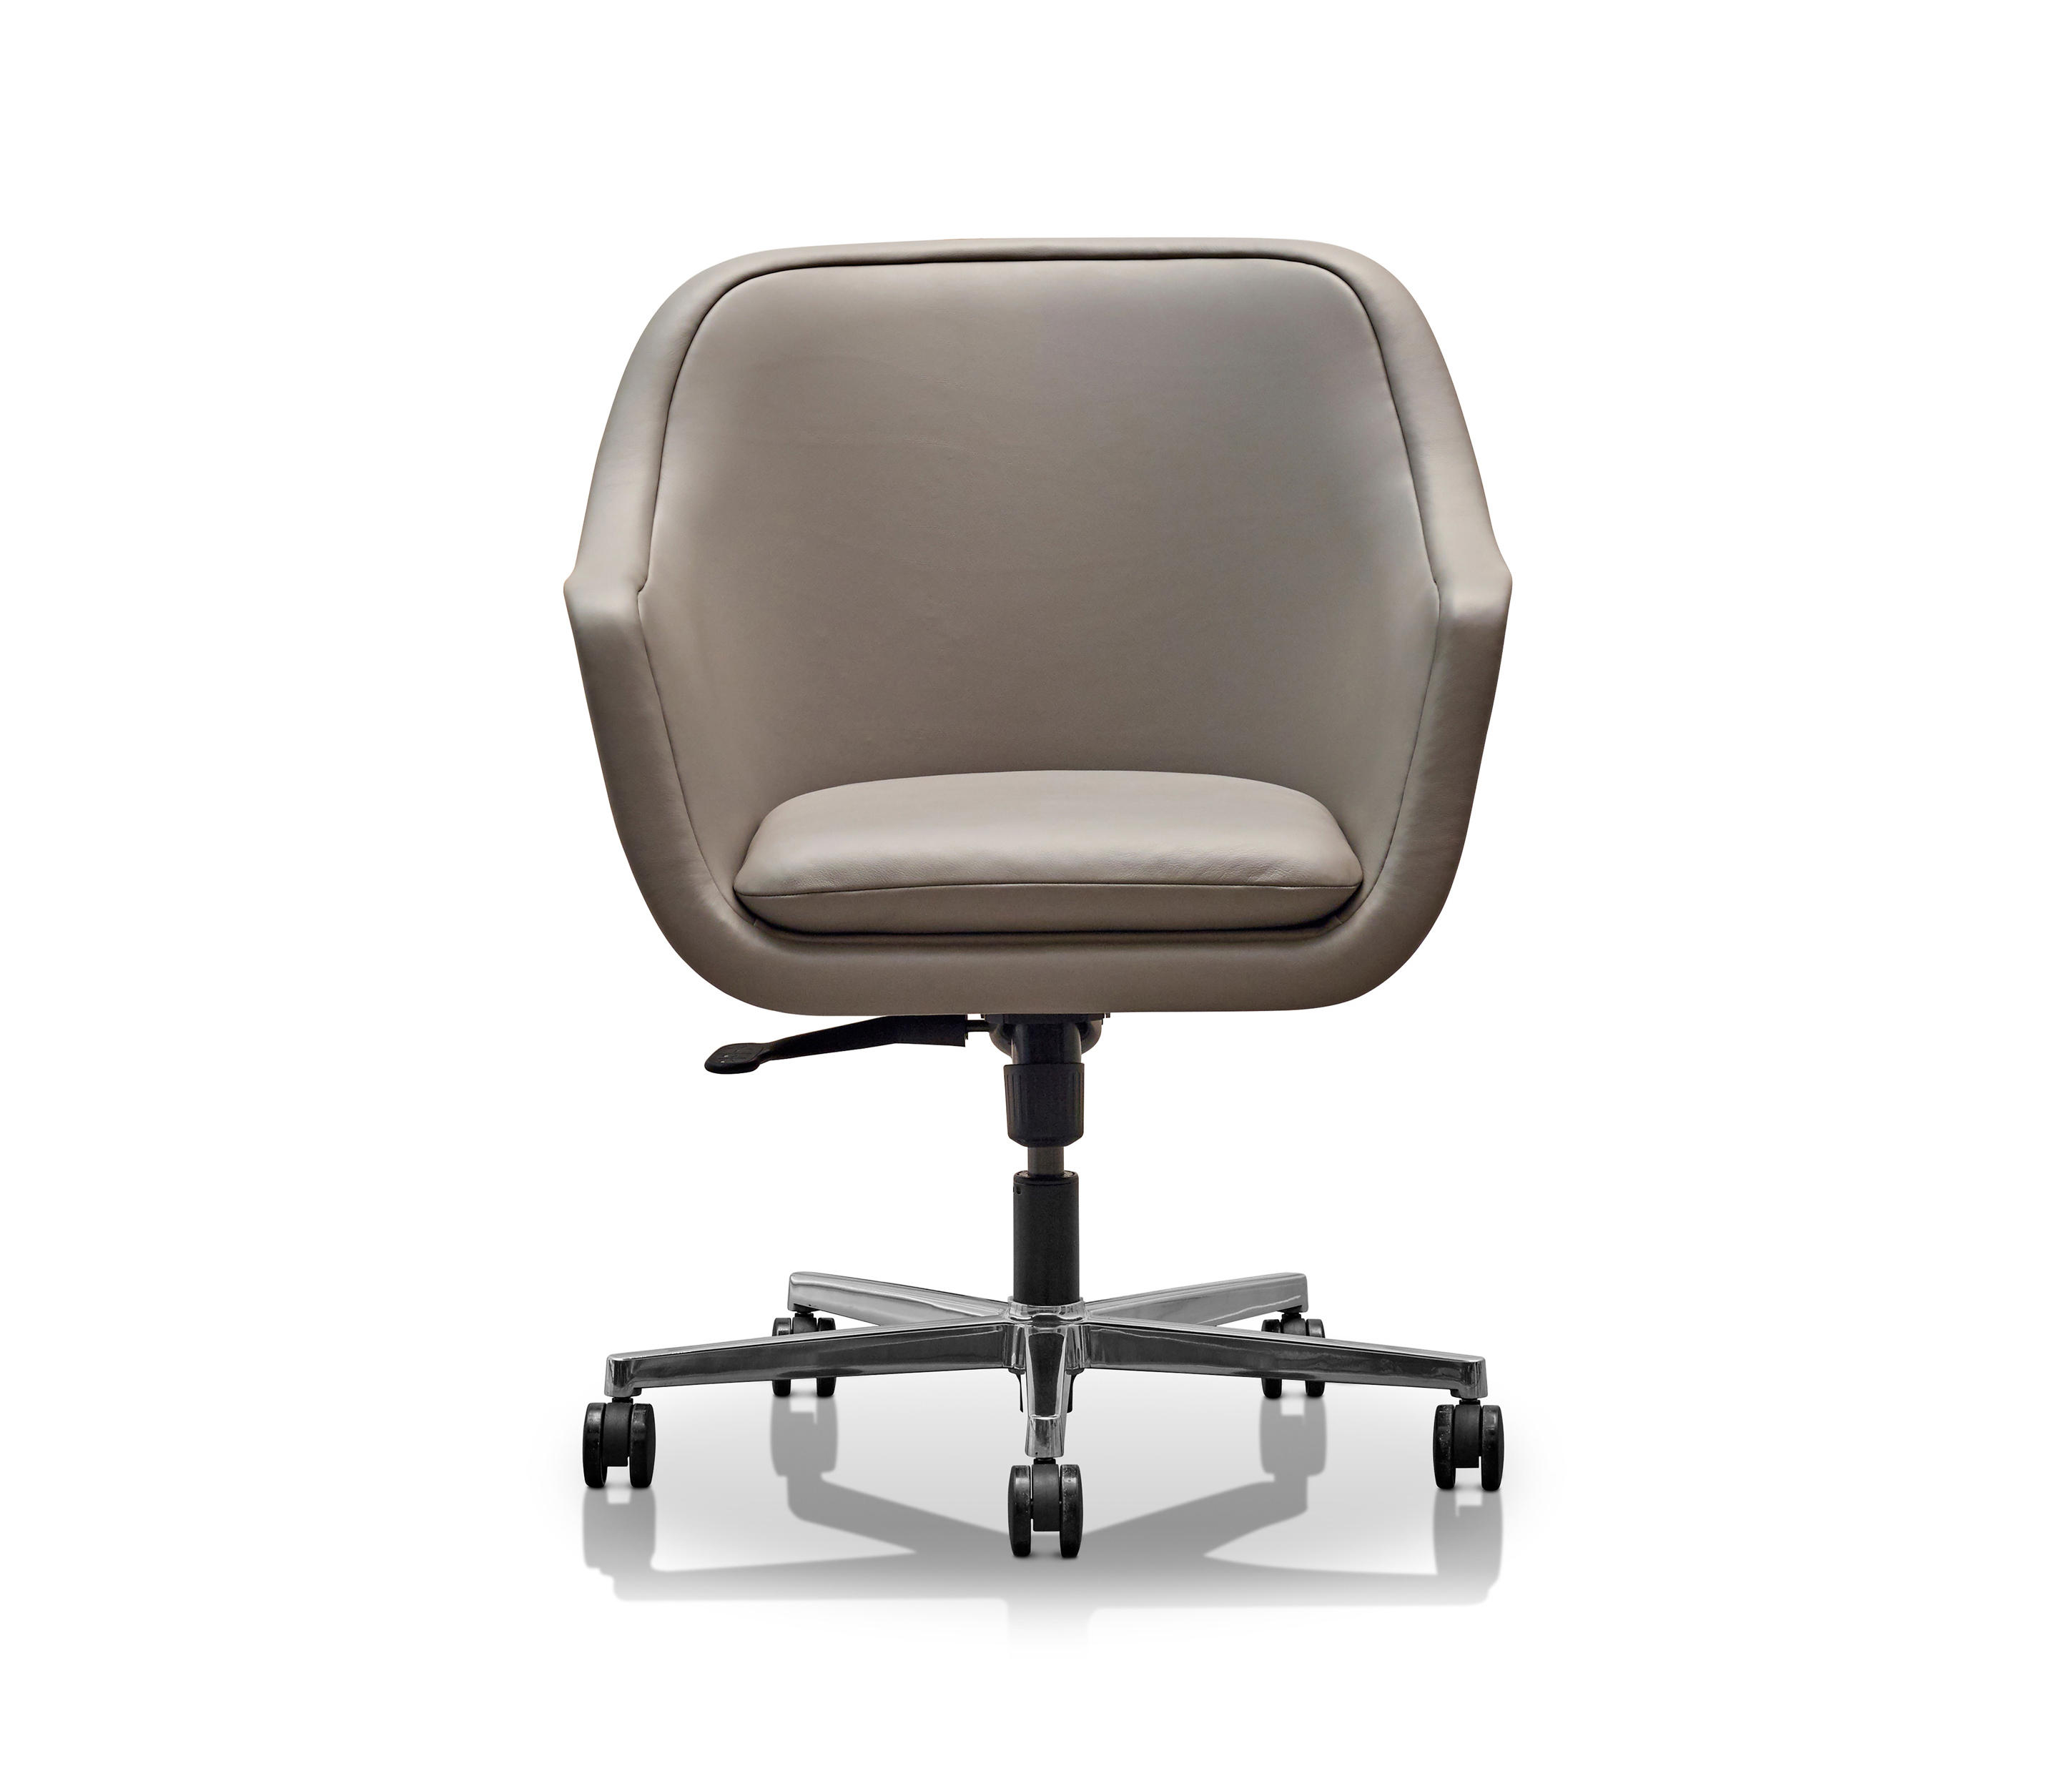 BUMPER CHAIR Task chairs from Herman Miller